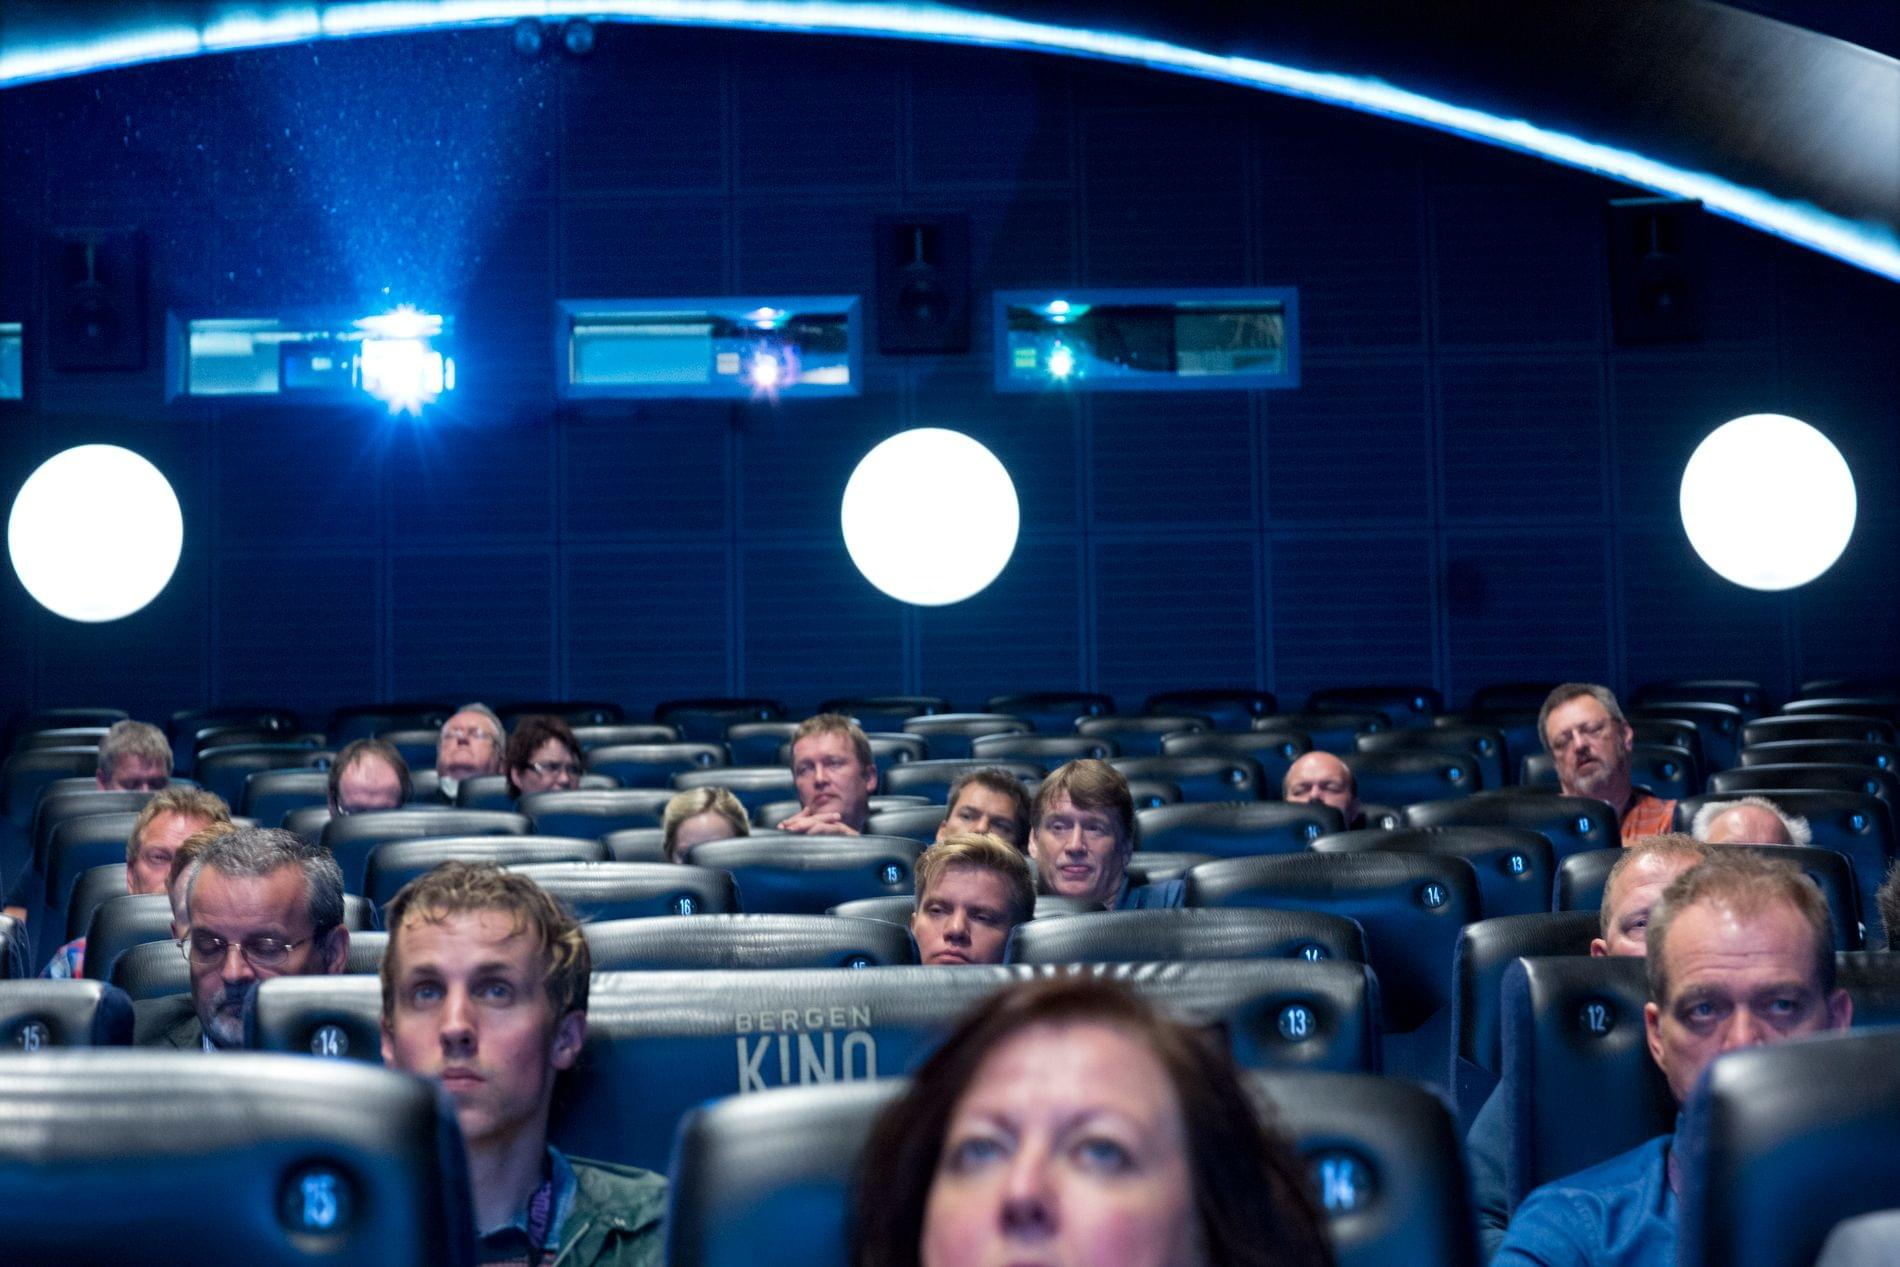 Bergen Kino Drives Hyper-Personalized Online Discovery & Ticketing with Filmgrail